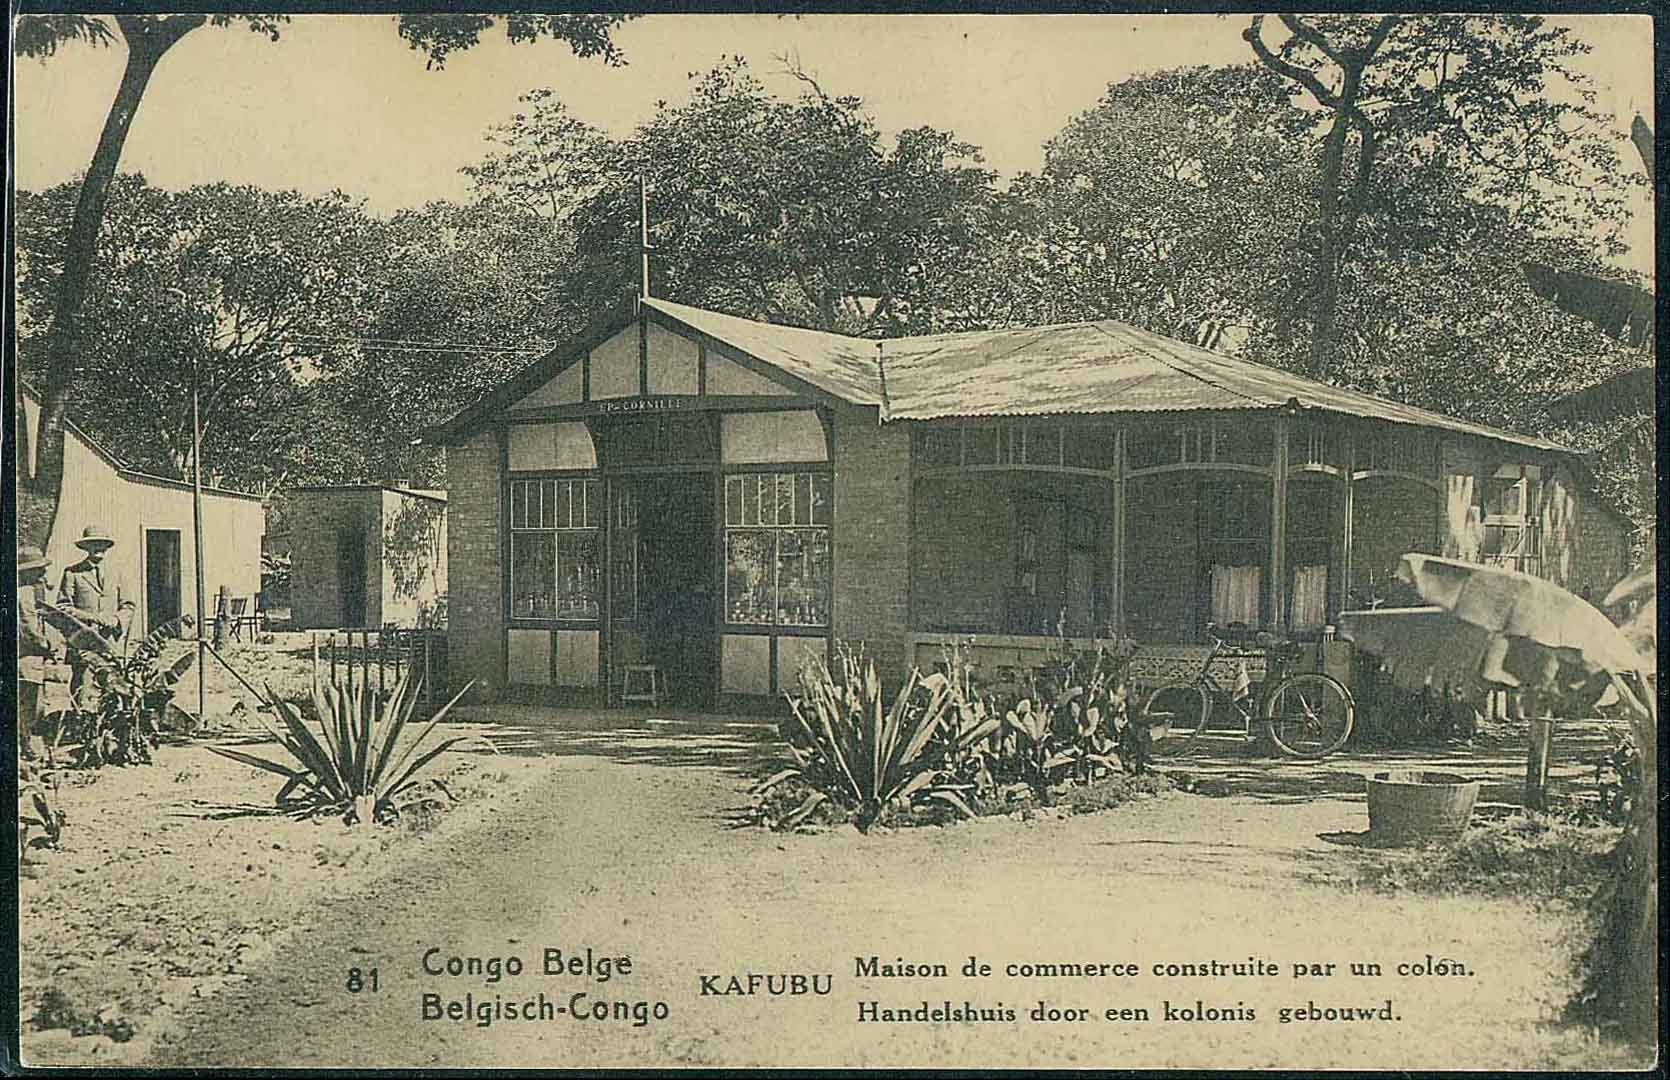 Pictorial Postal Card with Bicycle in fornt of the Cottage in Forest